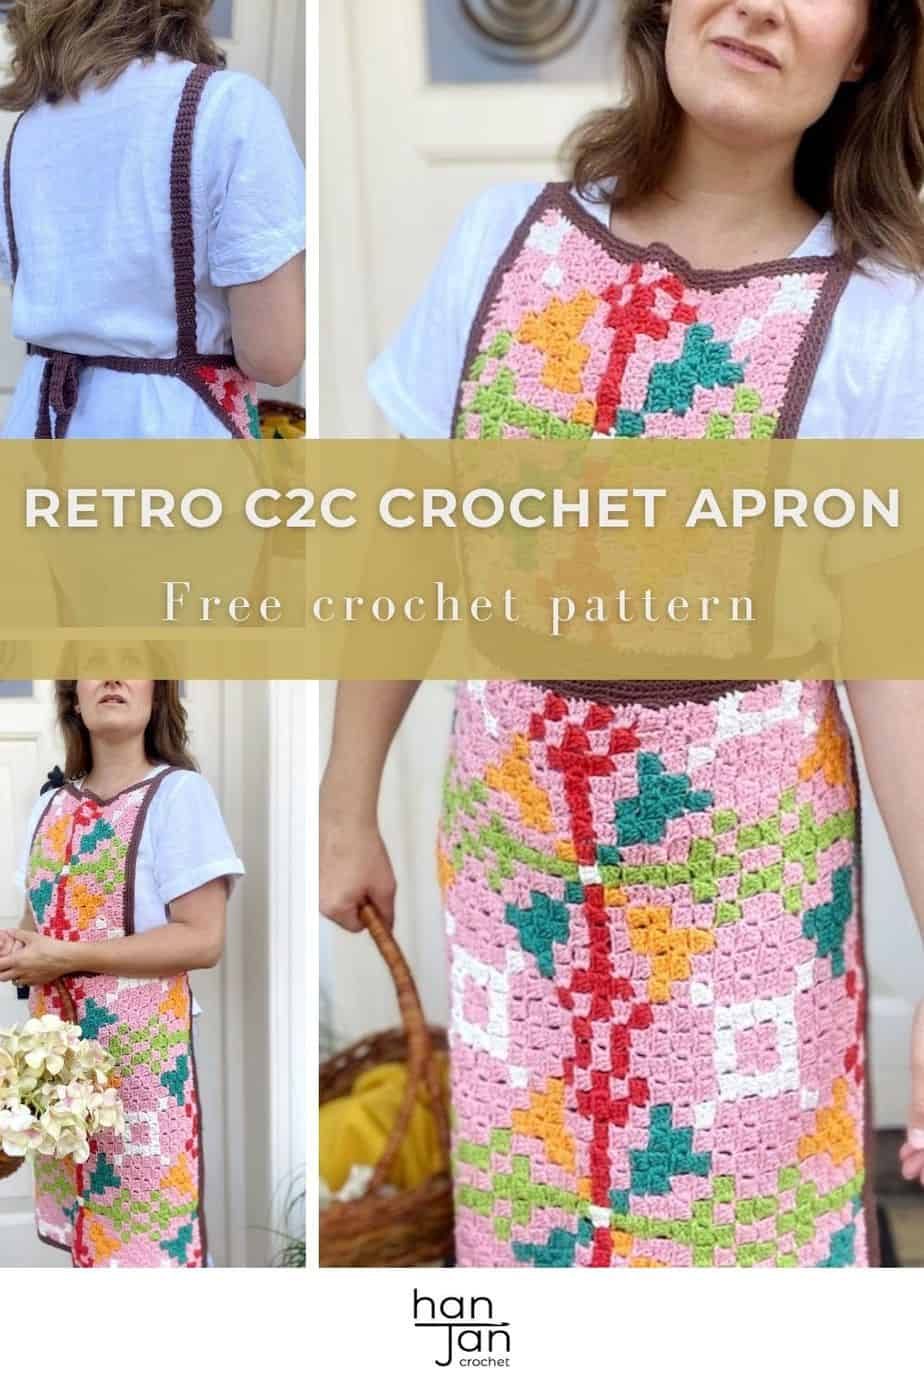 images showing front and back of a retro c2c crochet apron being worn by a woman holding a basket of flowers